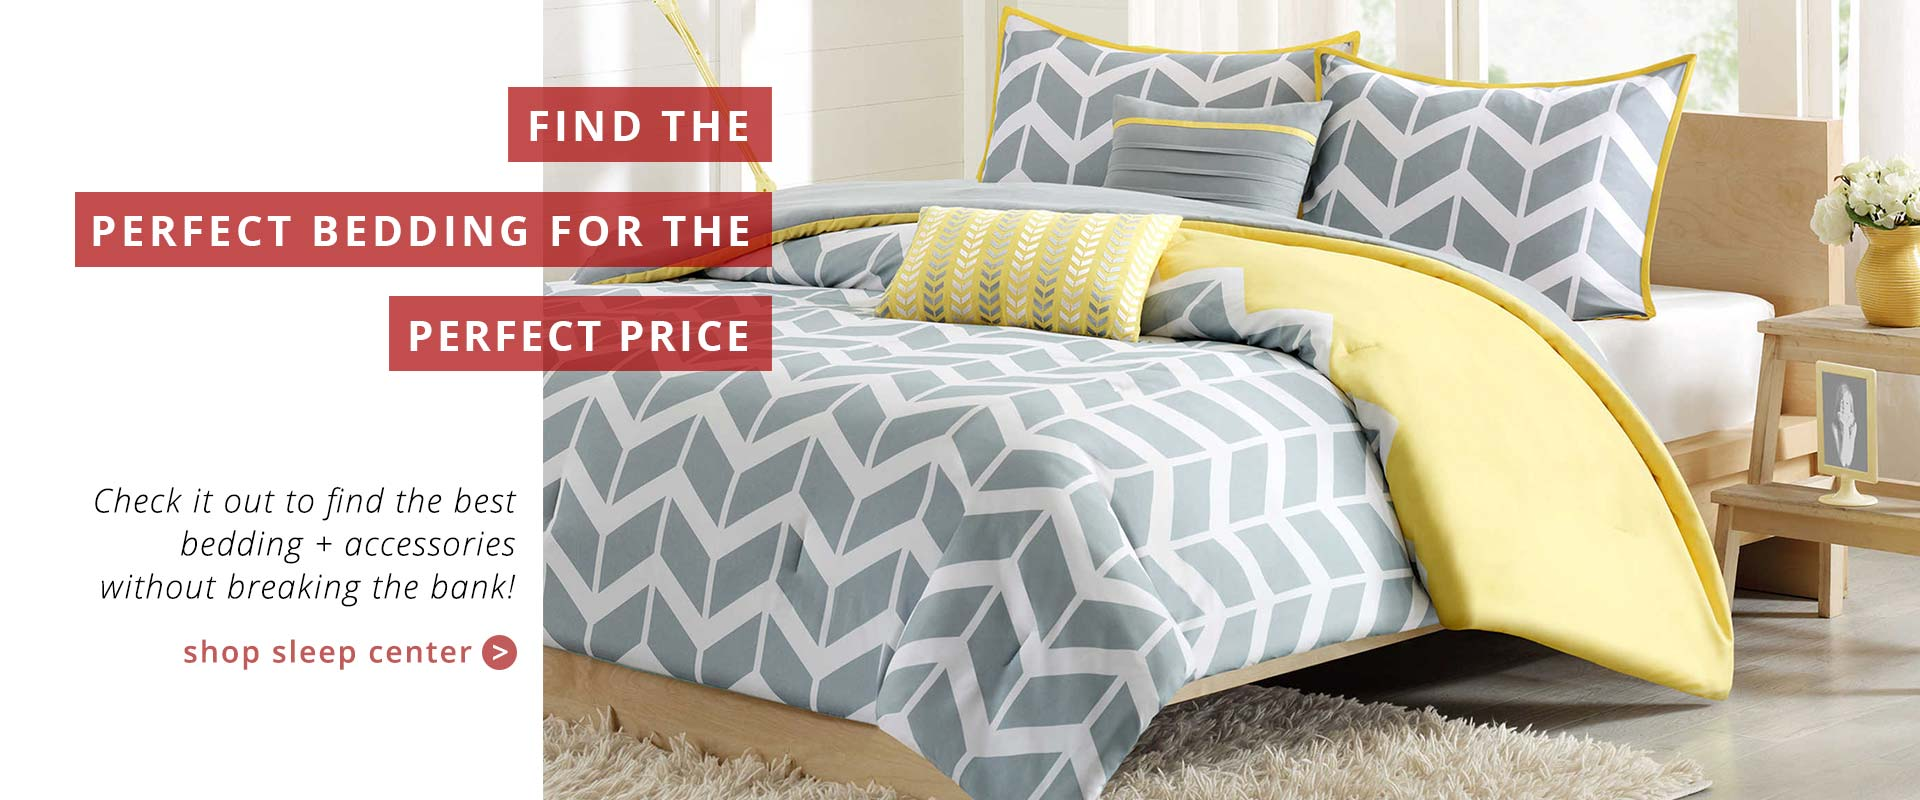 Find the perfect bedding for the perfect price. Shop Sleep Center